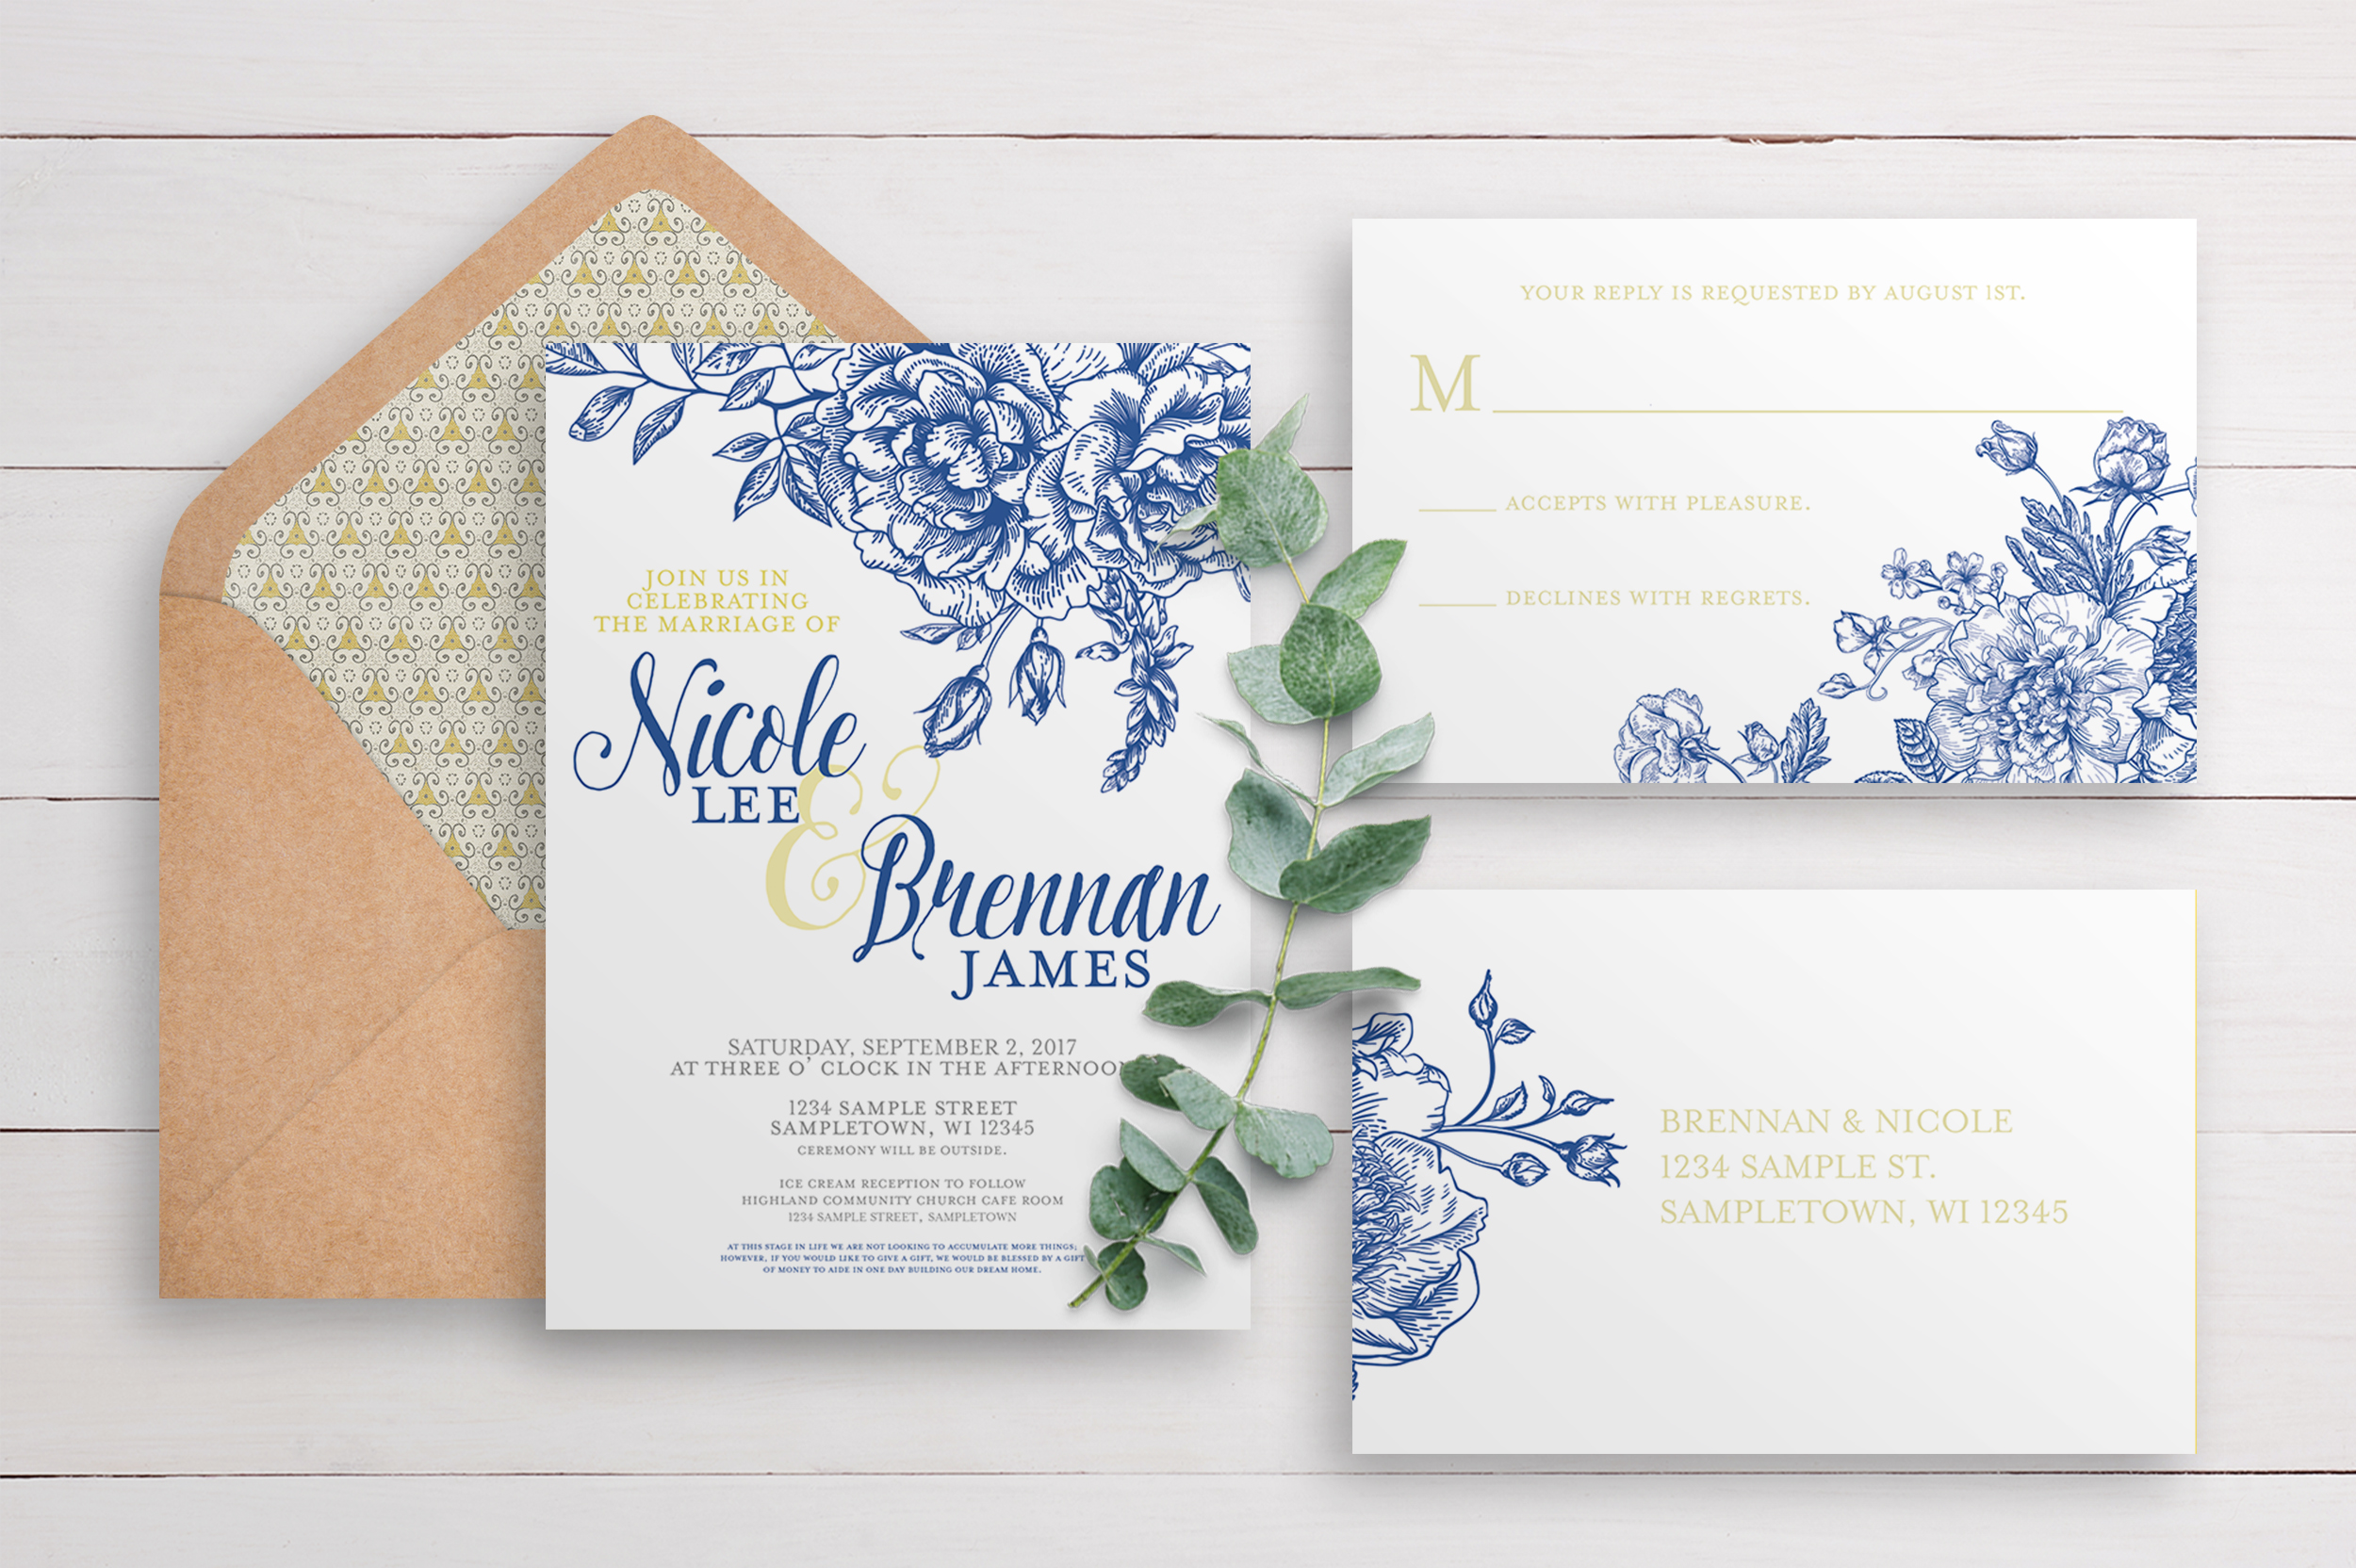 Shorey_WeddingInvitation_Mockup2.jpg